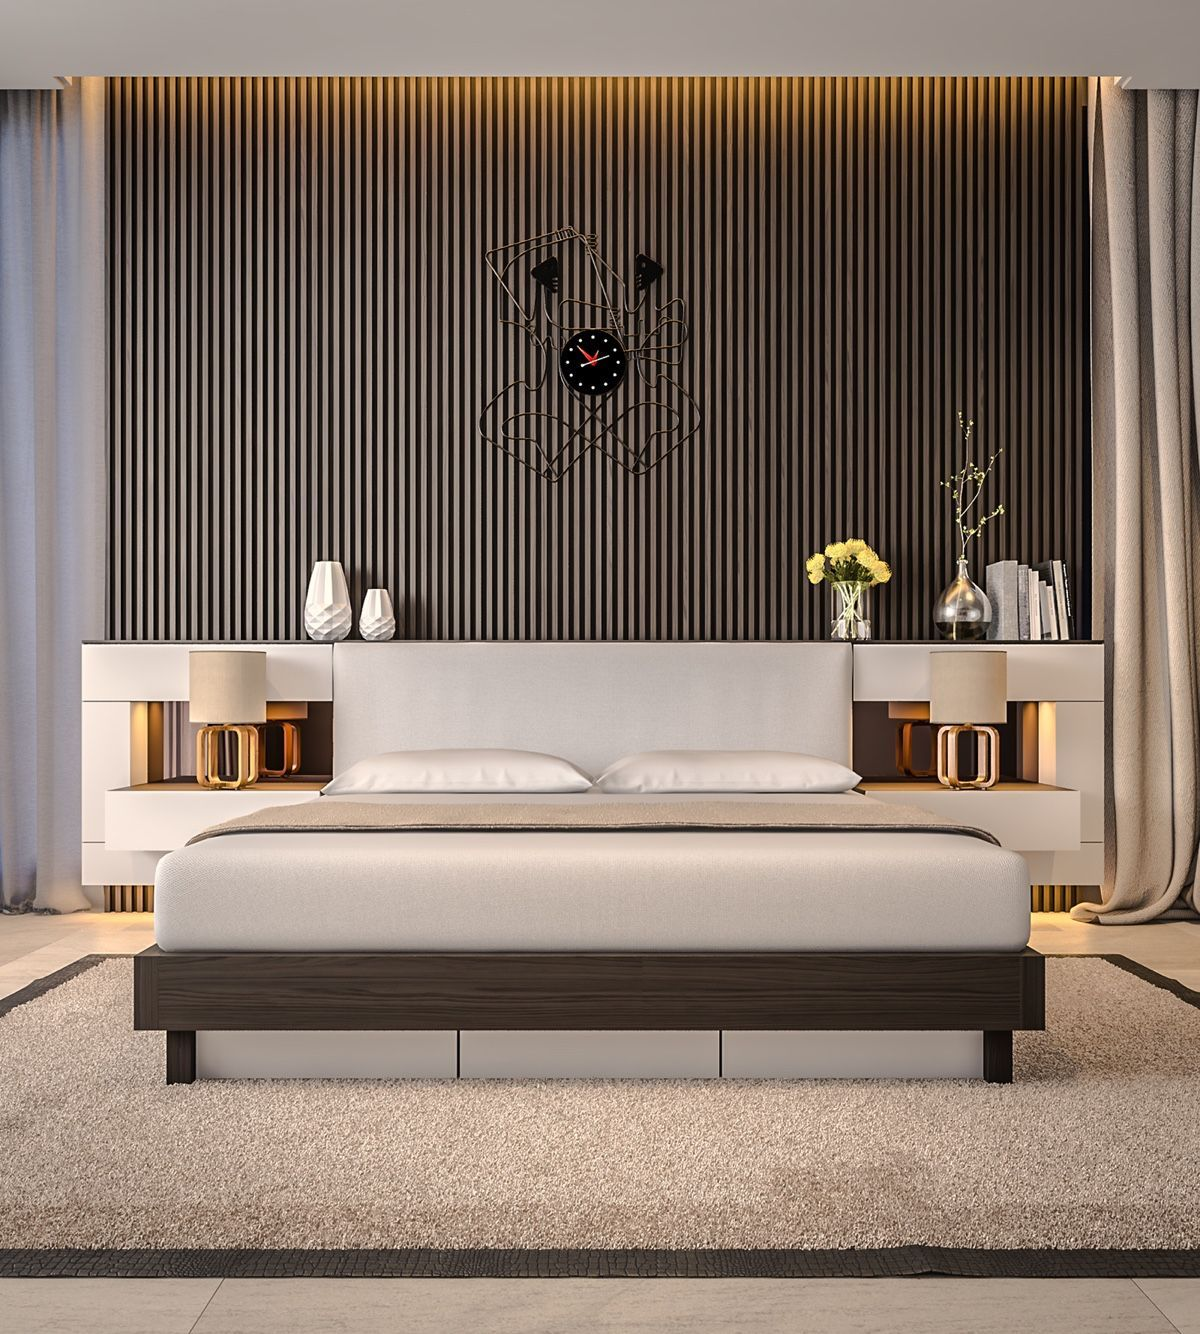 Make Sleeptime Luxurious With These 4 Stunning Bedroom Spaces Remodel Bedroom Bedroom Design Master Bedroom Remodel